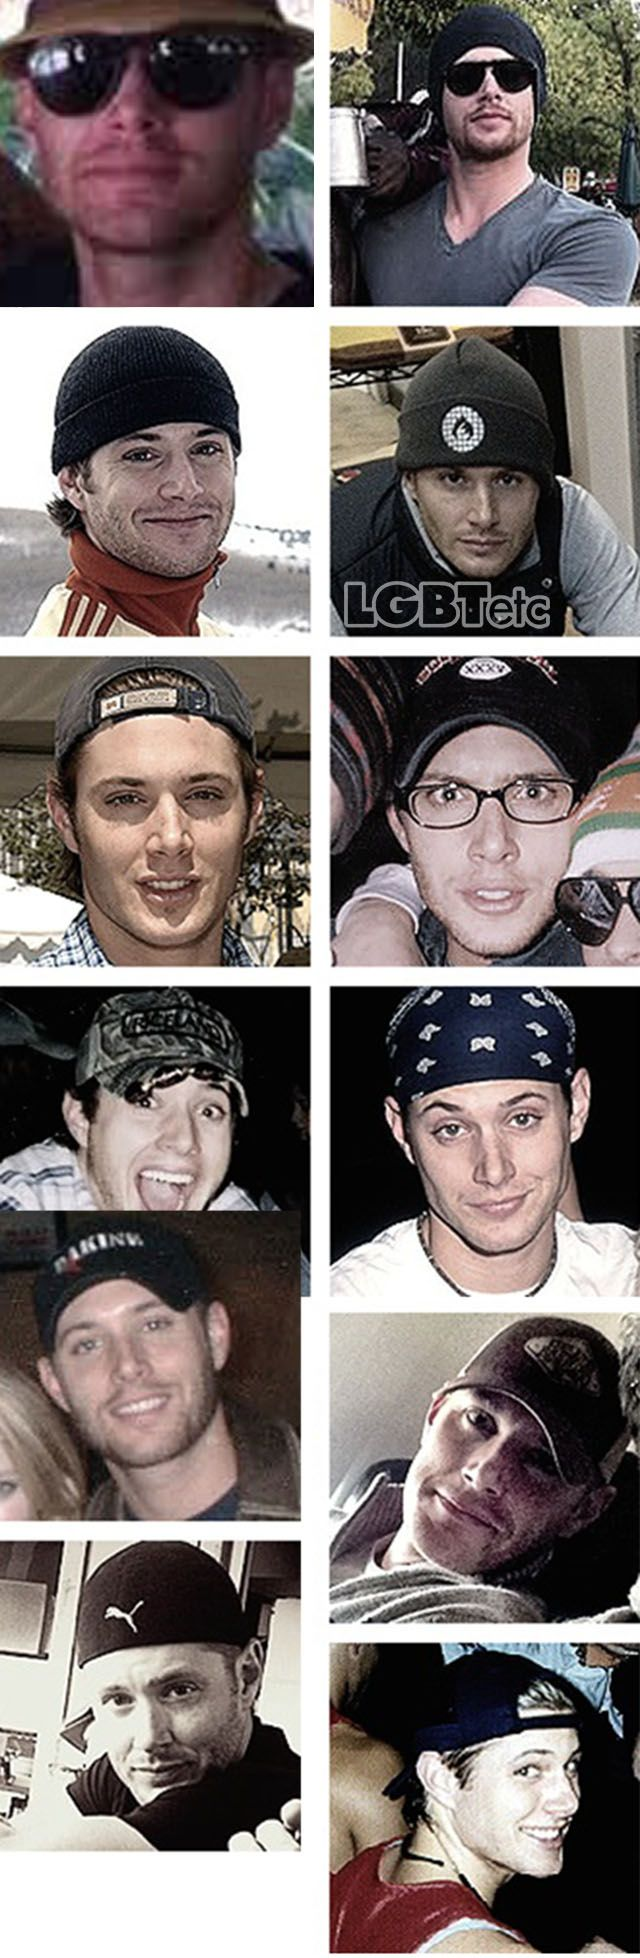 Jensen Ackles, ladies and gentlemen; if you don't love him than you're Sammy-season-six and have no soul